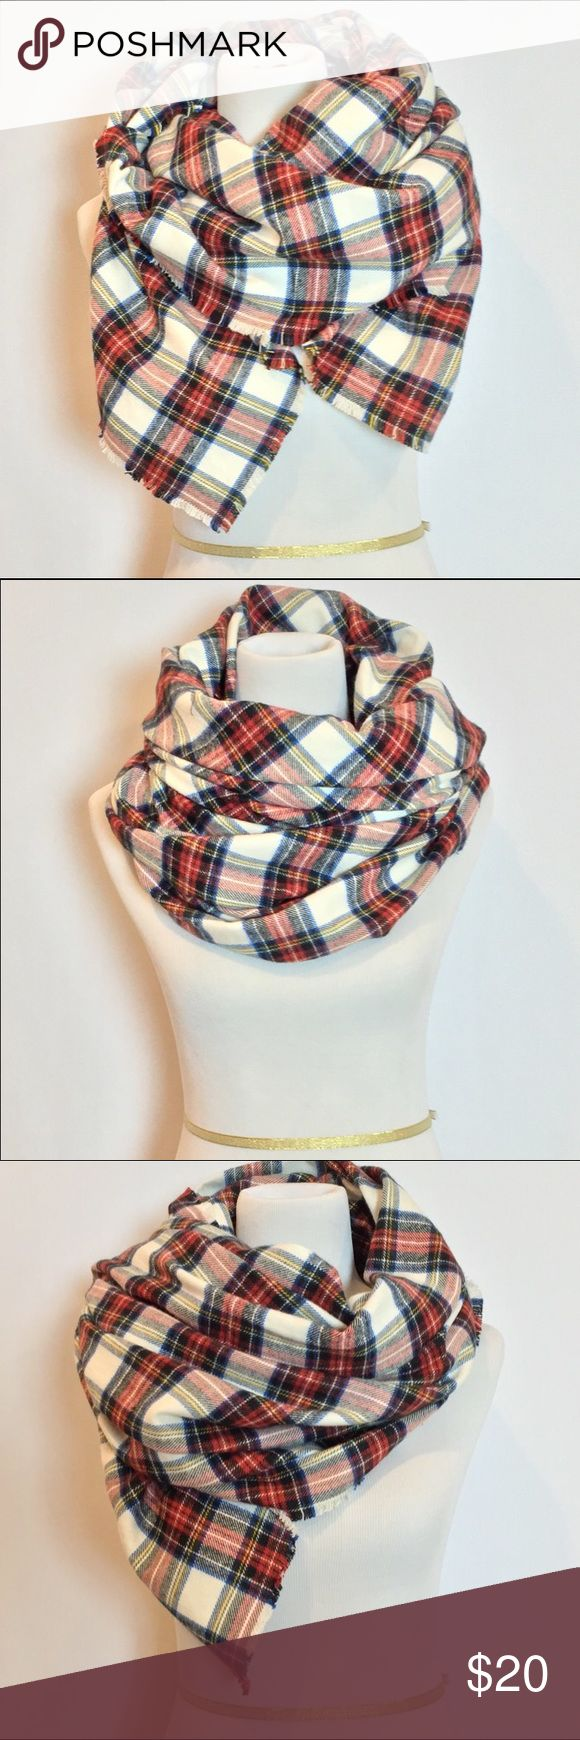 Plaid Tartan Blanket Scarf Stay cozy and comfortable this season with this beautiful oversized blanket scarf. Made from high quality, medium weight, soft fabric, this scarf will keep you warm all season long.  Cut wide & extra long to allow for even more layering & styling opportunities. This piece is finished with fringed edges for an added bohemian & vintage touch. NWOT! Accessories Scarves & Wraps